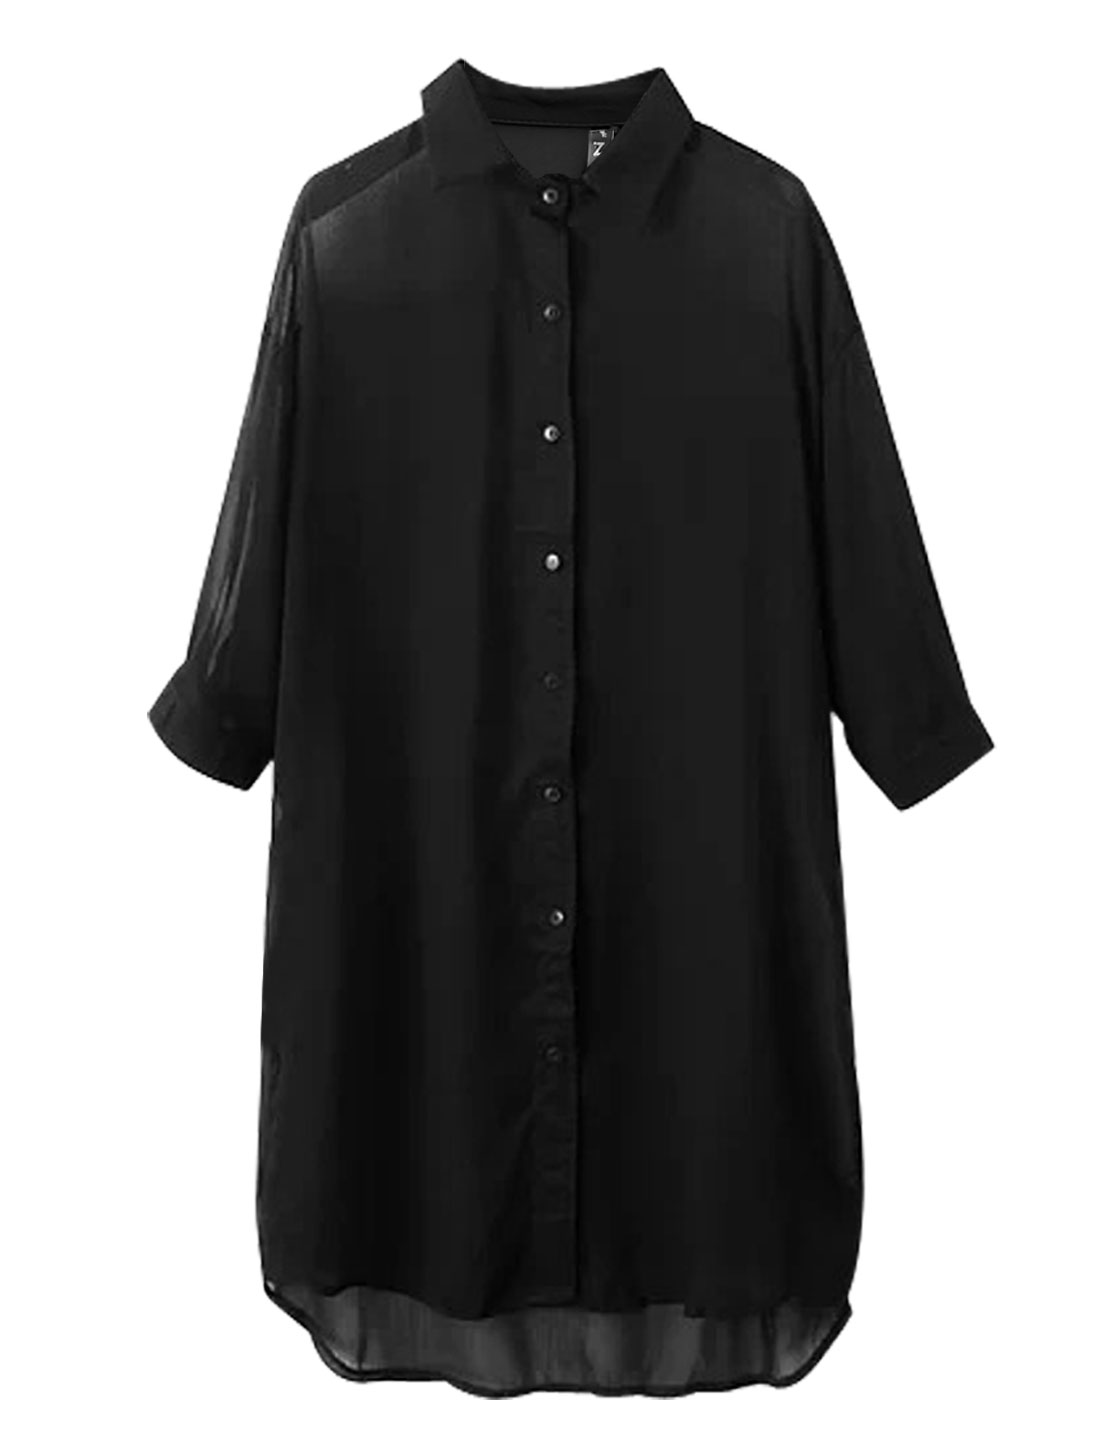 Lady Single Breasted 3/4 Sleeve Semi Sheer Long Chiffon Coat Black XS